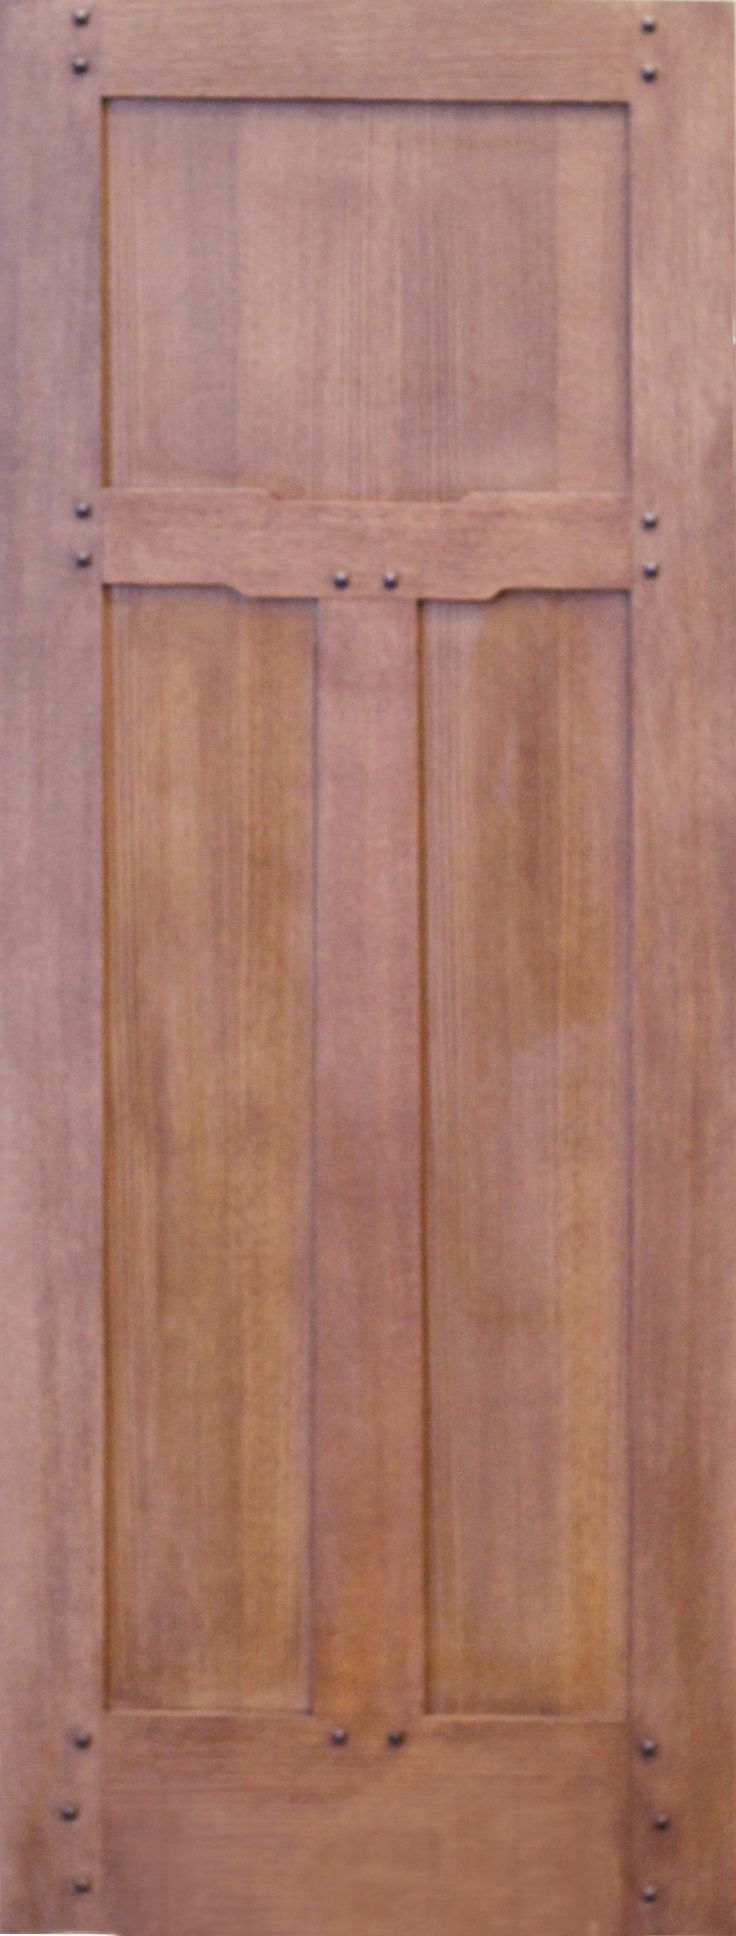 Rustic wood interior doors - Customized Statement Doors Fully Customized Interior Doors From Concept To A Work Of Art